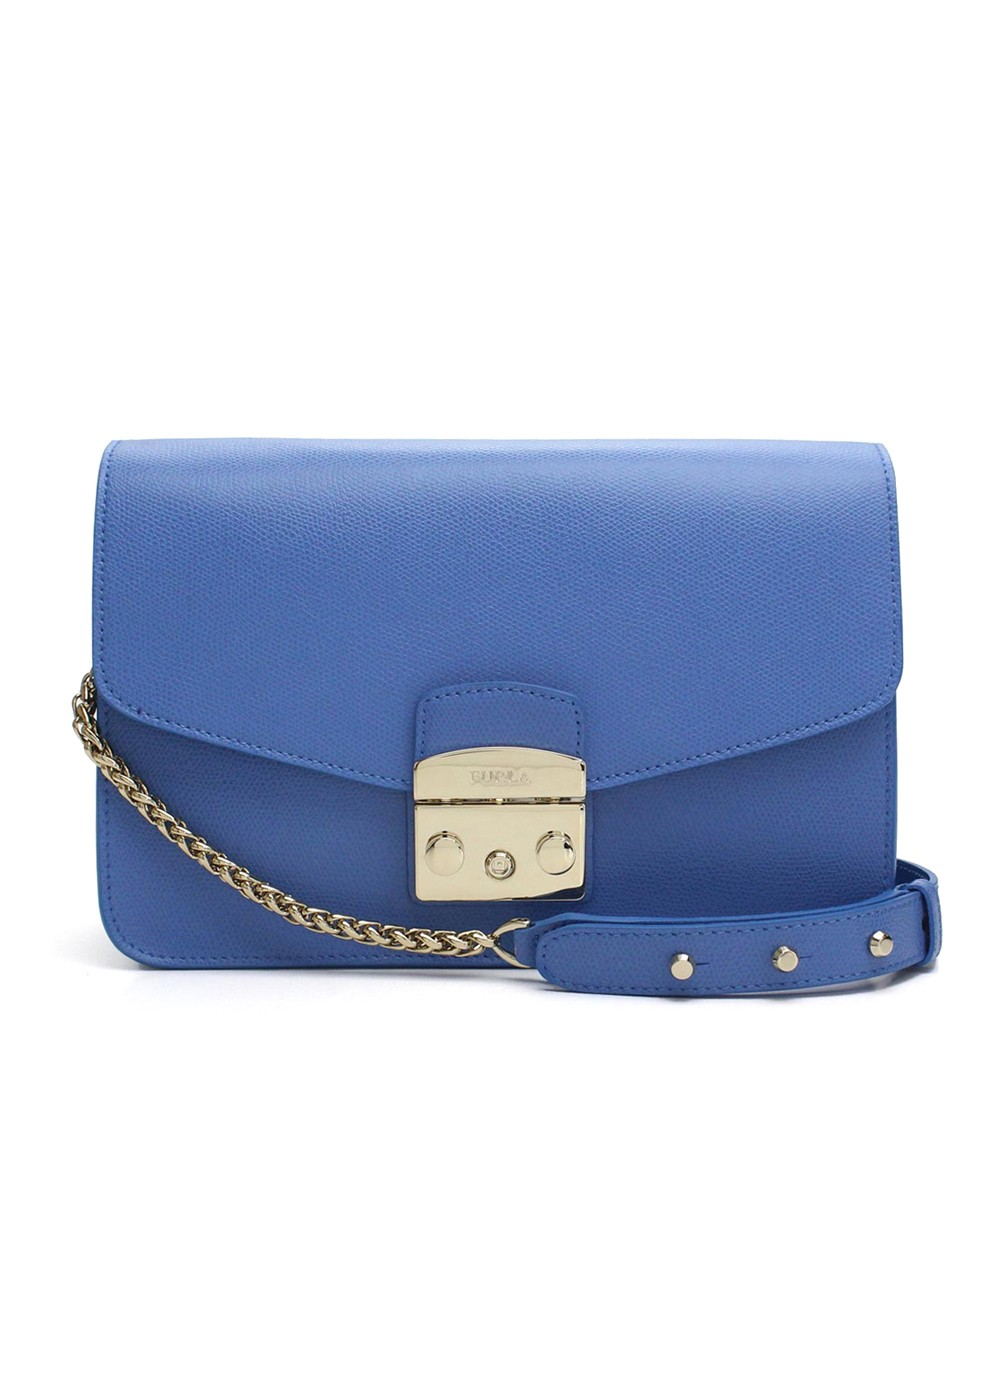 【最大47%OFF】BHV7 933213 ARE CFT CELESTE|CELESTE|ショルダーバッグ|FURLA(B)